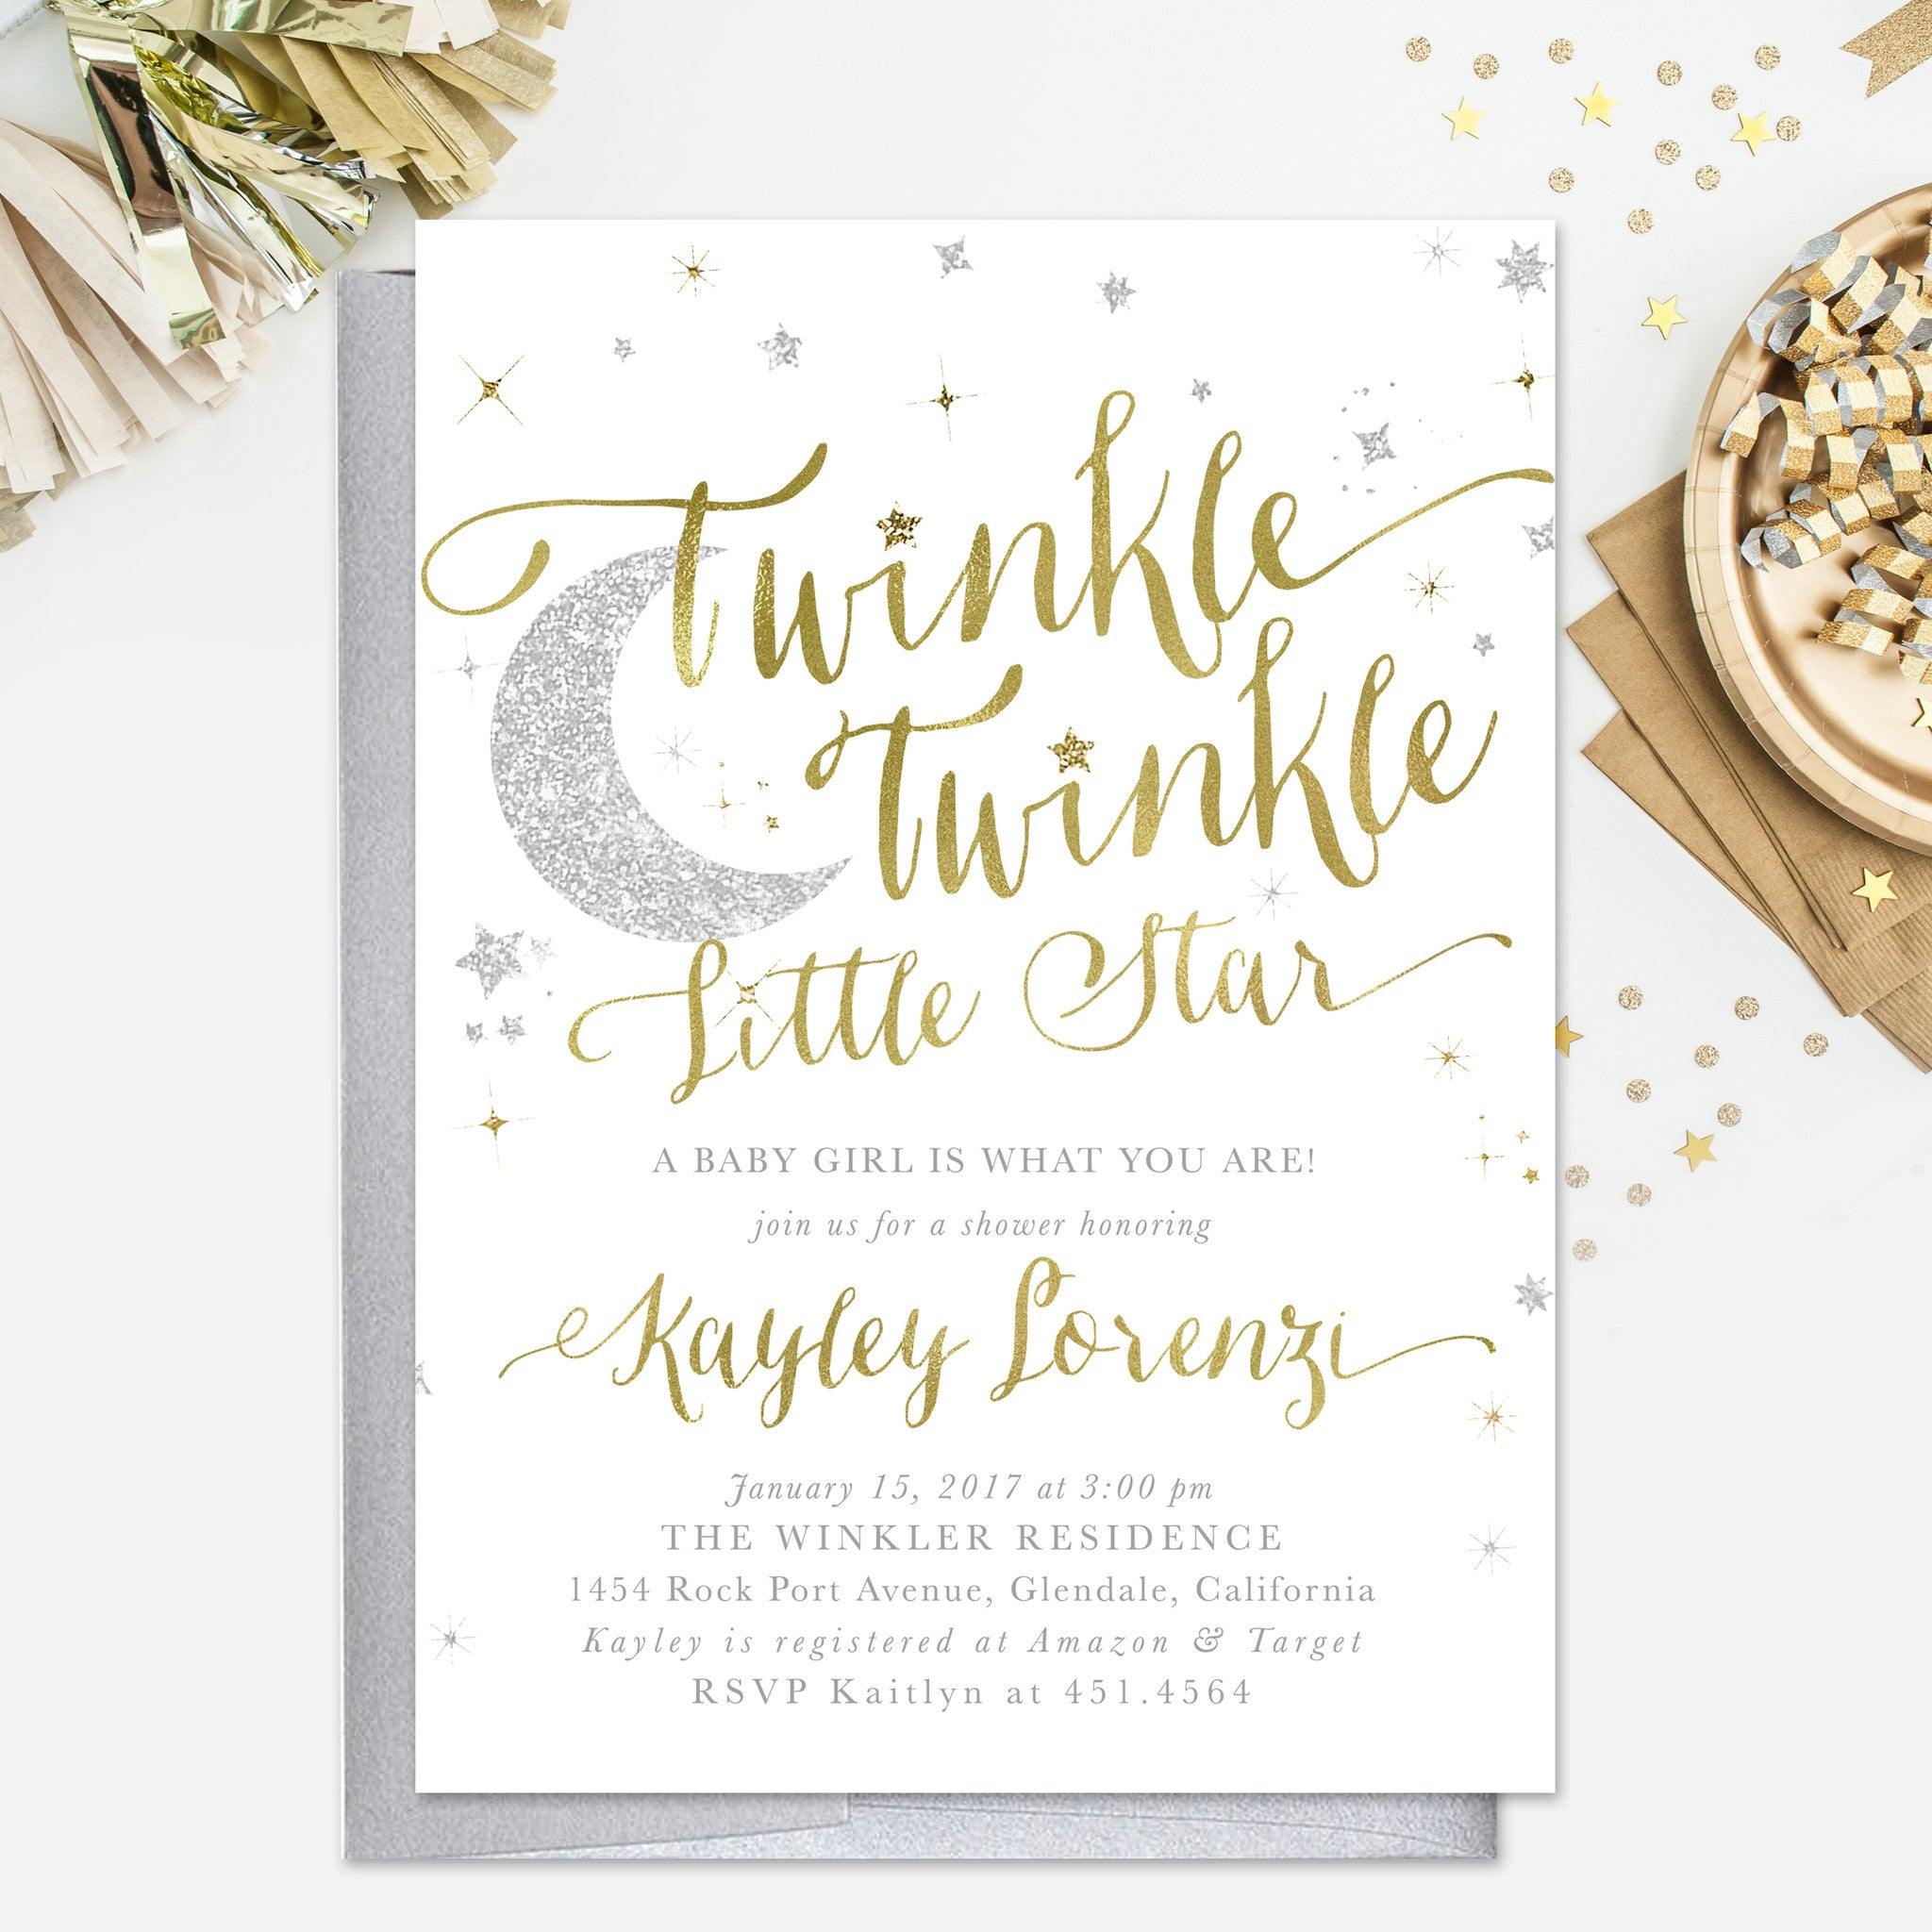 Twinkle Twinkle Little Star Boy or Girl Baby Shower Invitation